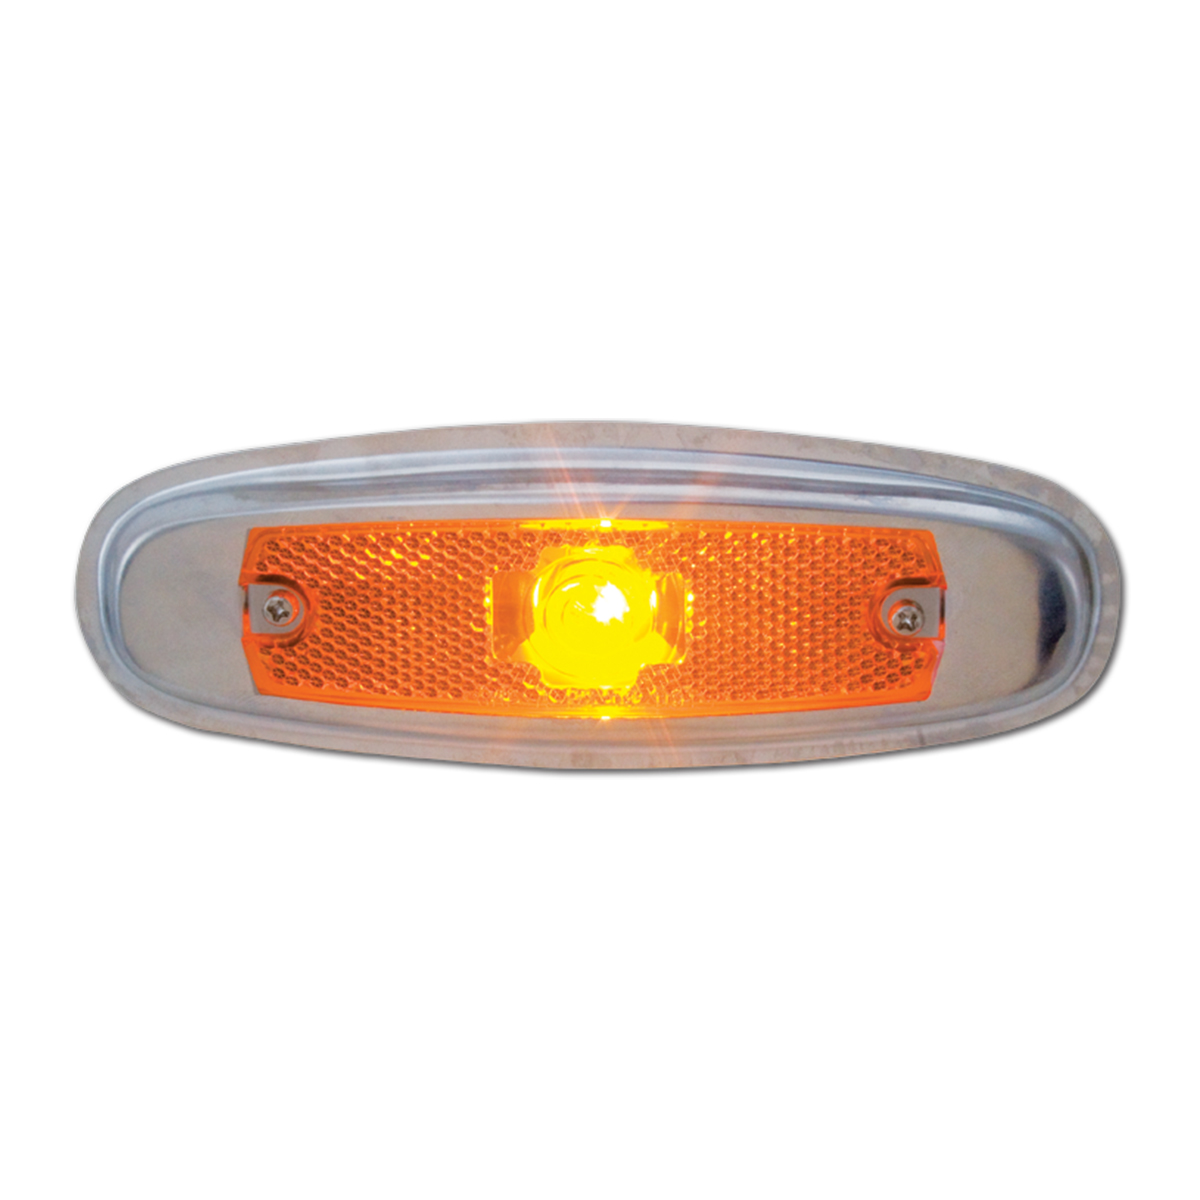 #81300 Orignial Style Amber Peterbilt Light with Regular Stainless Steel Rim